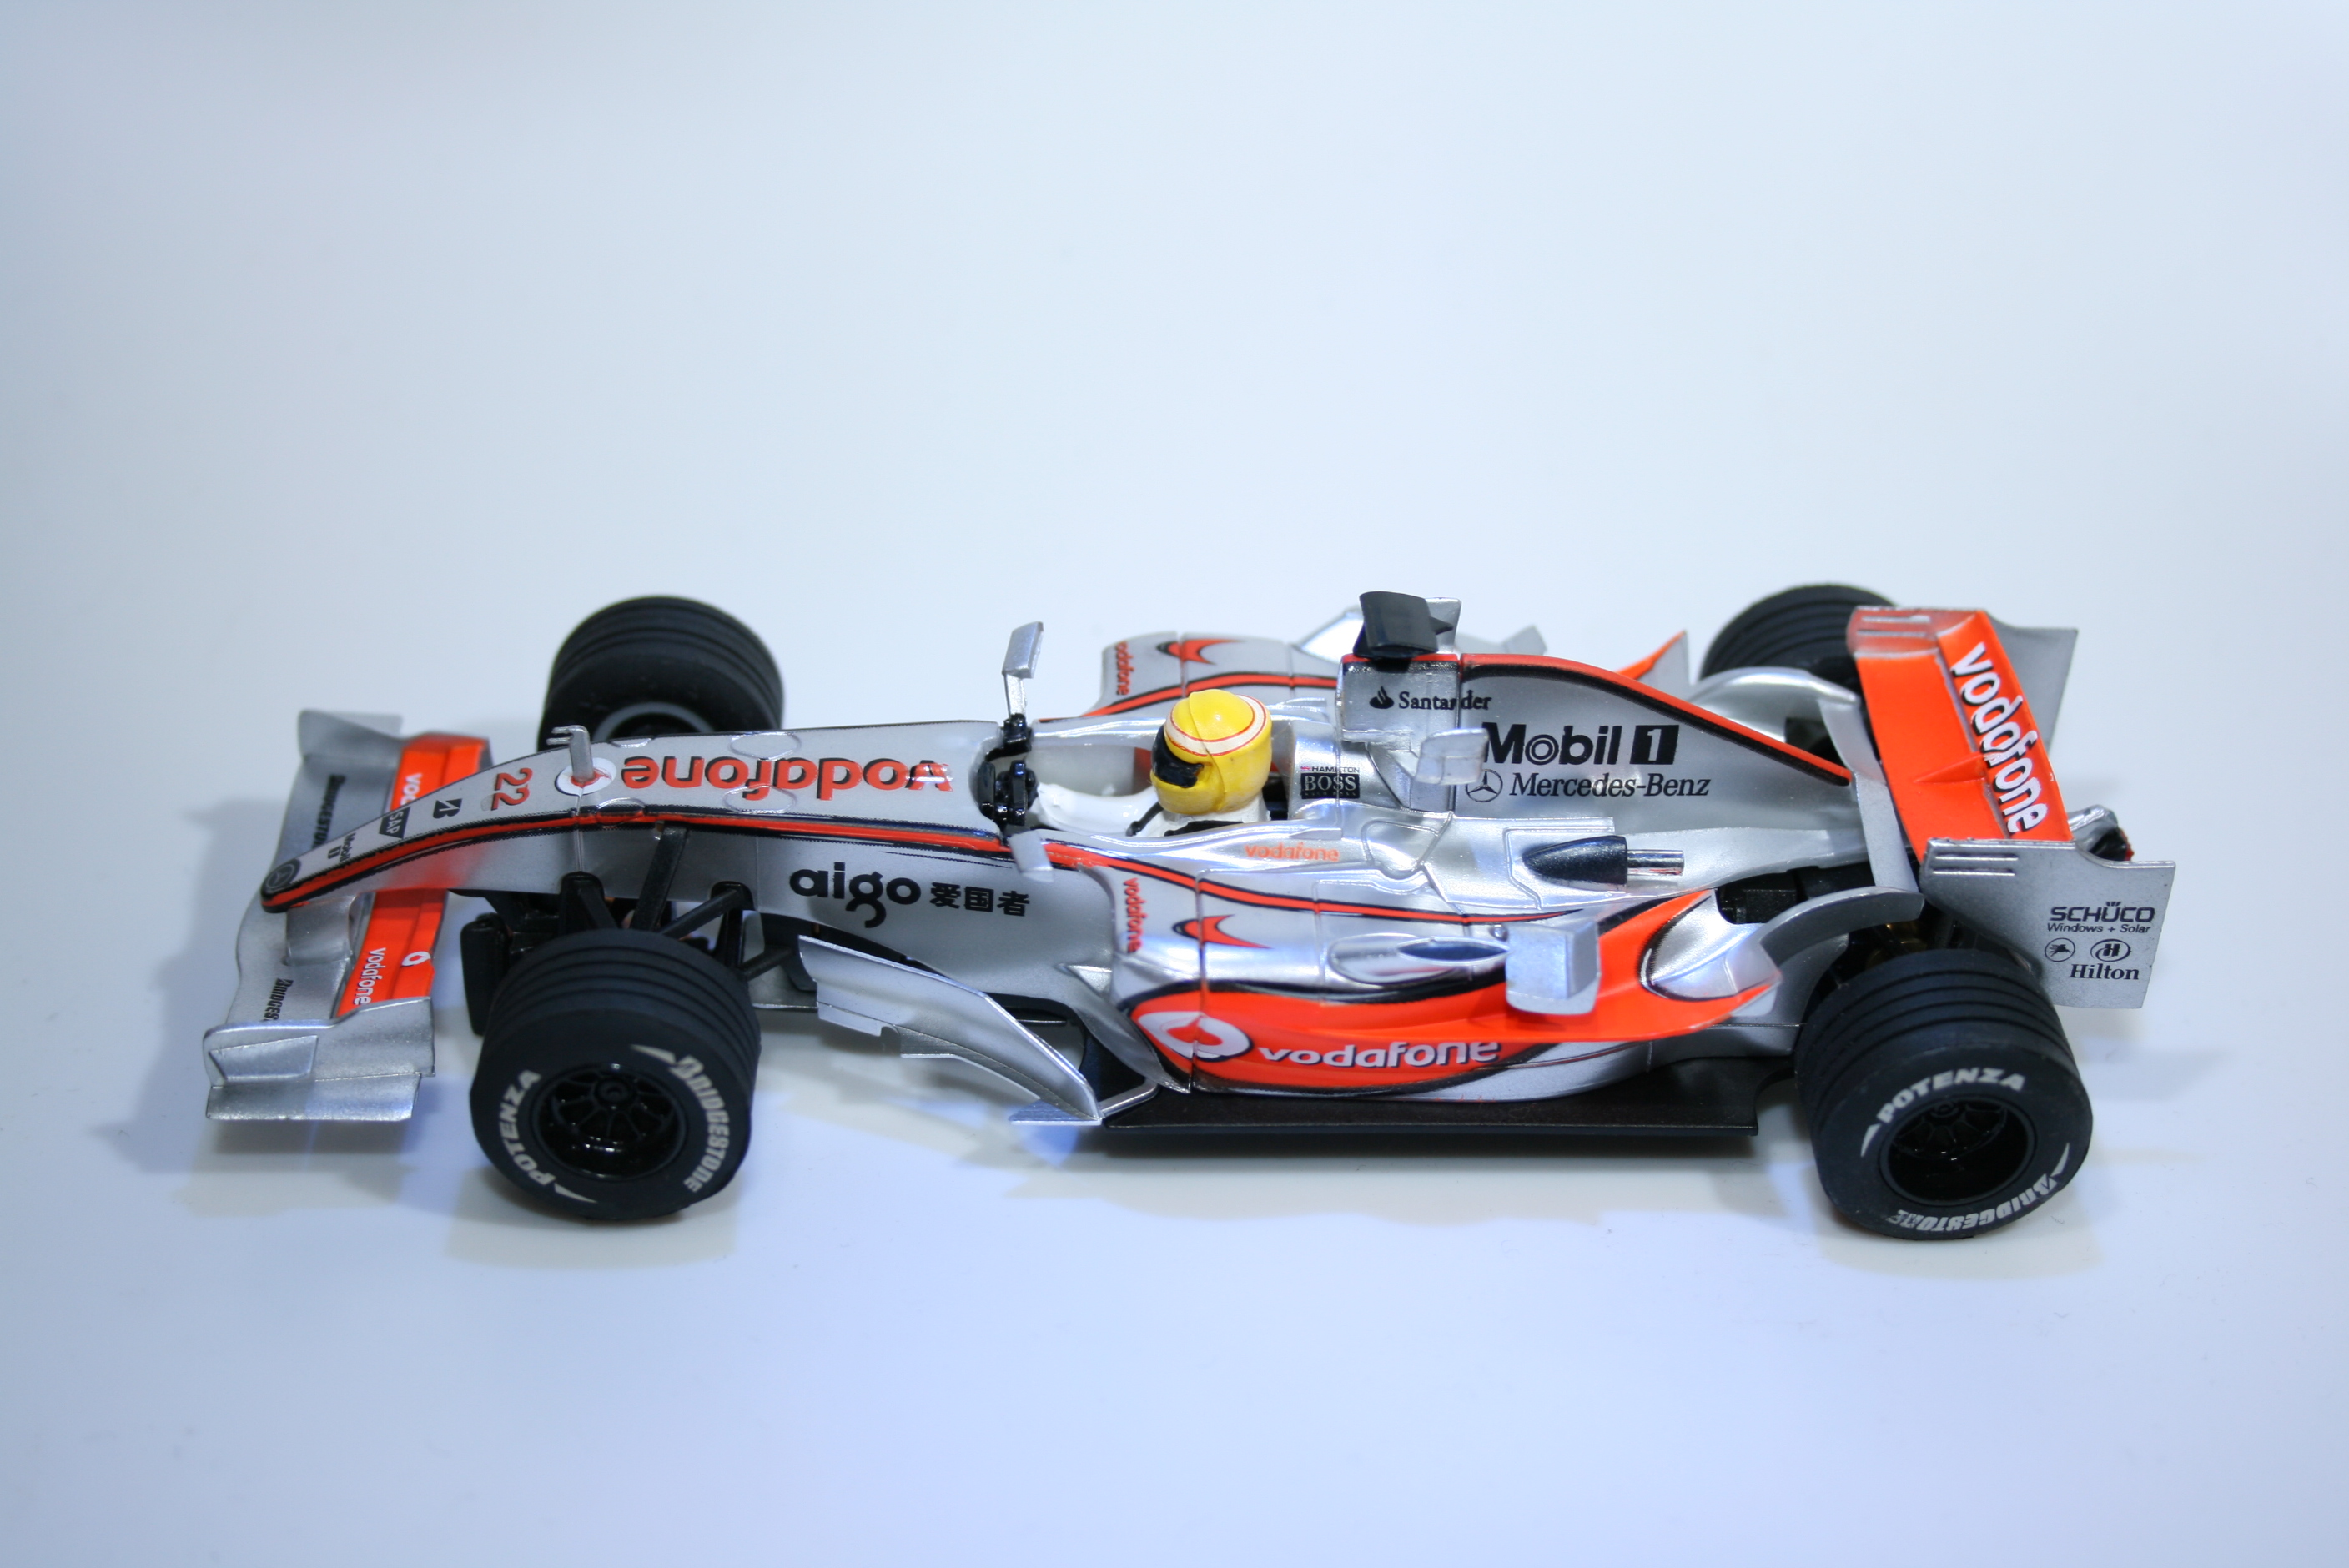 788 Mclaren MP4/23 2008 L Hamilton SCX Grand Campeones 2008 Boxed